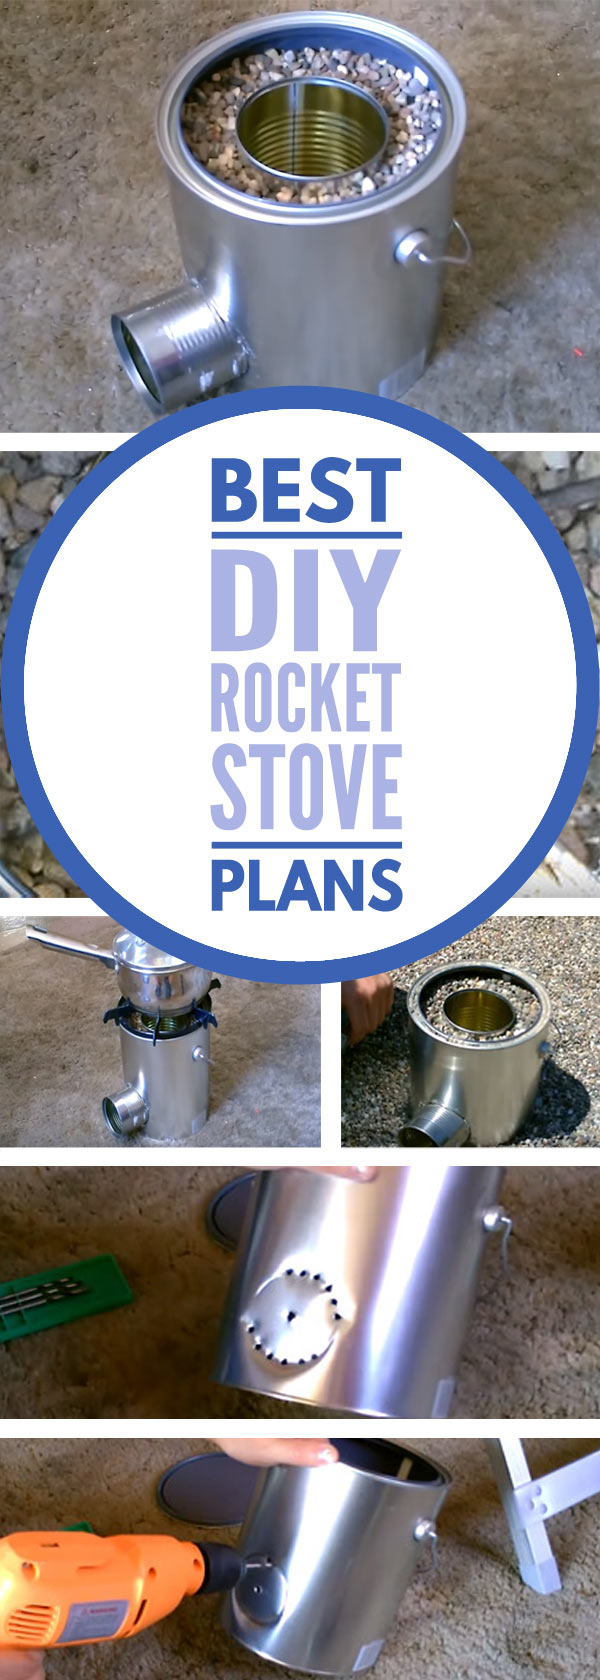 Best Rocket Stove Plans